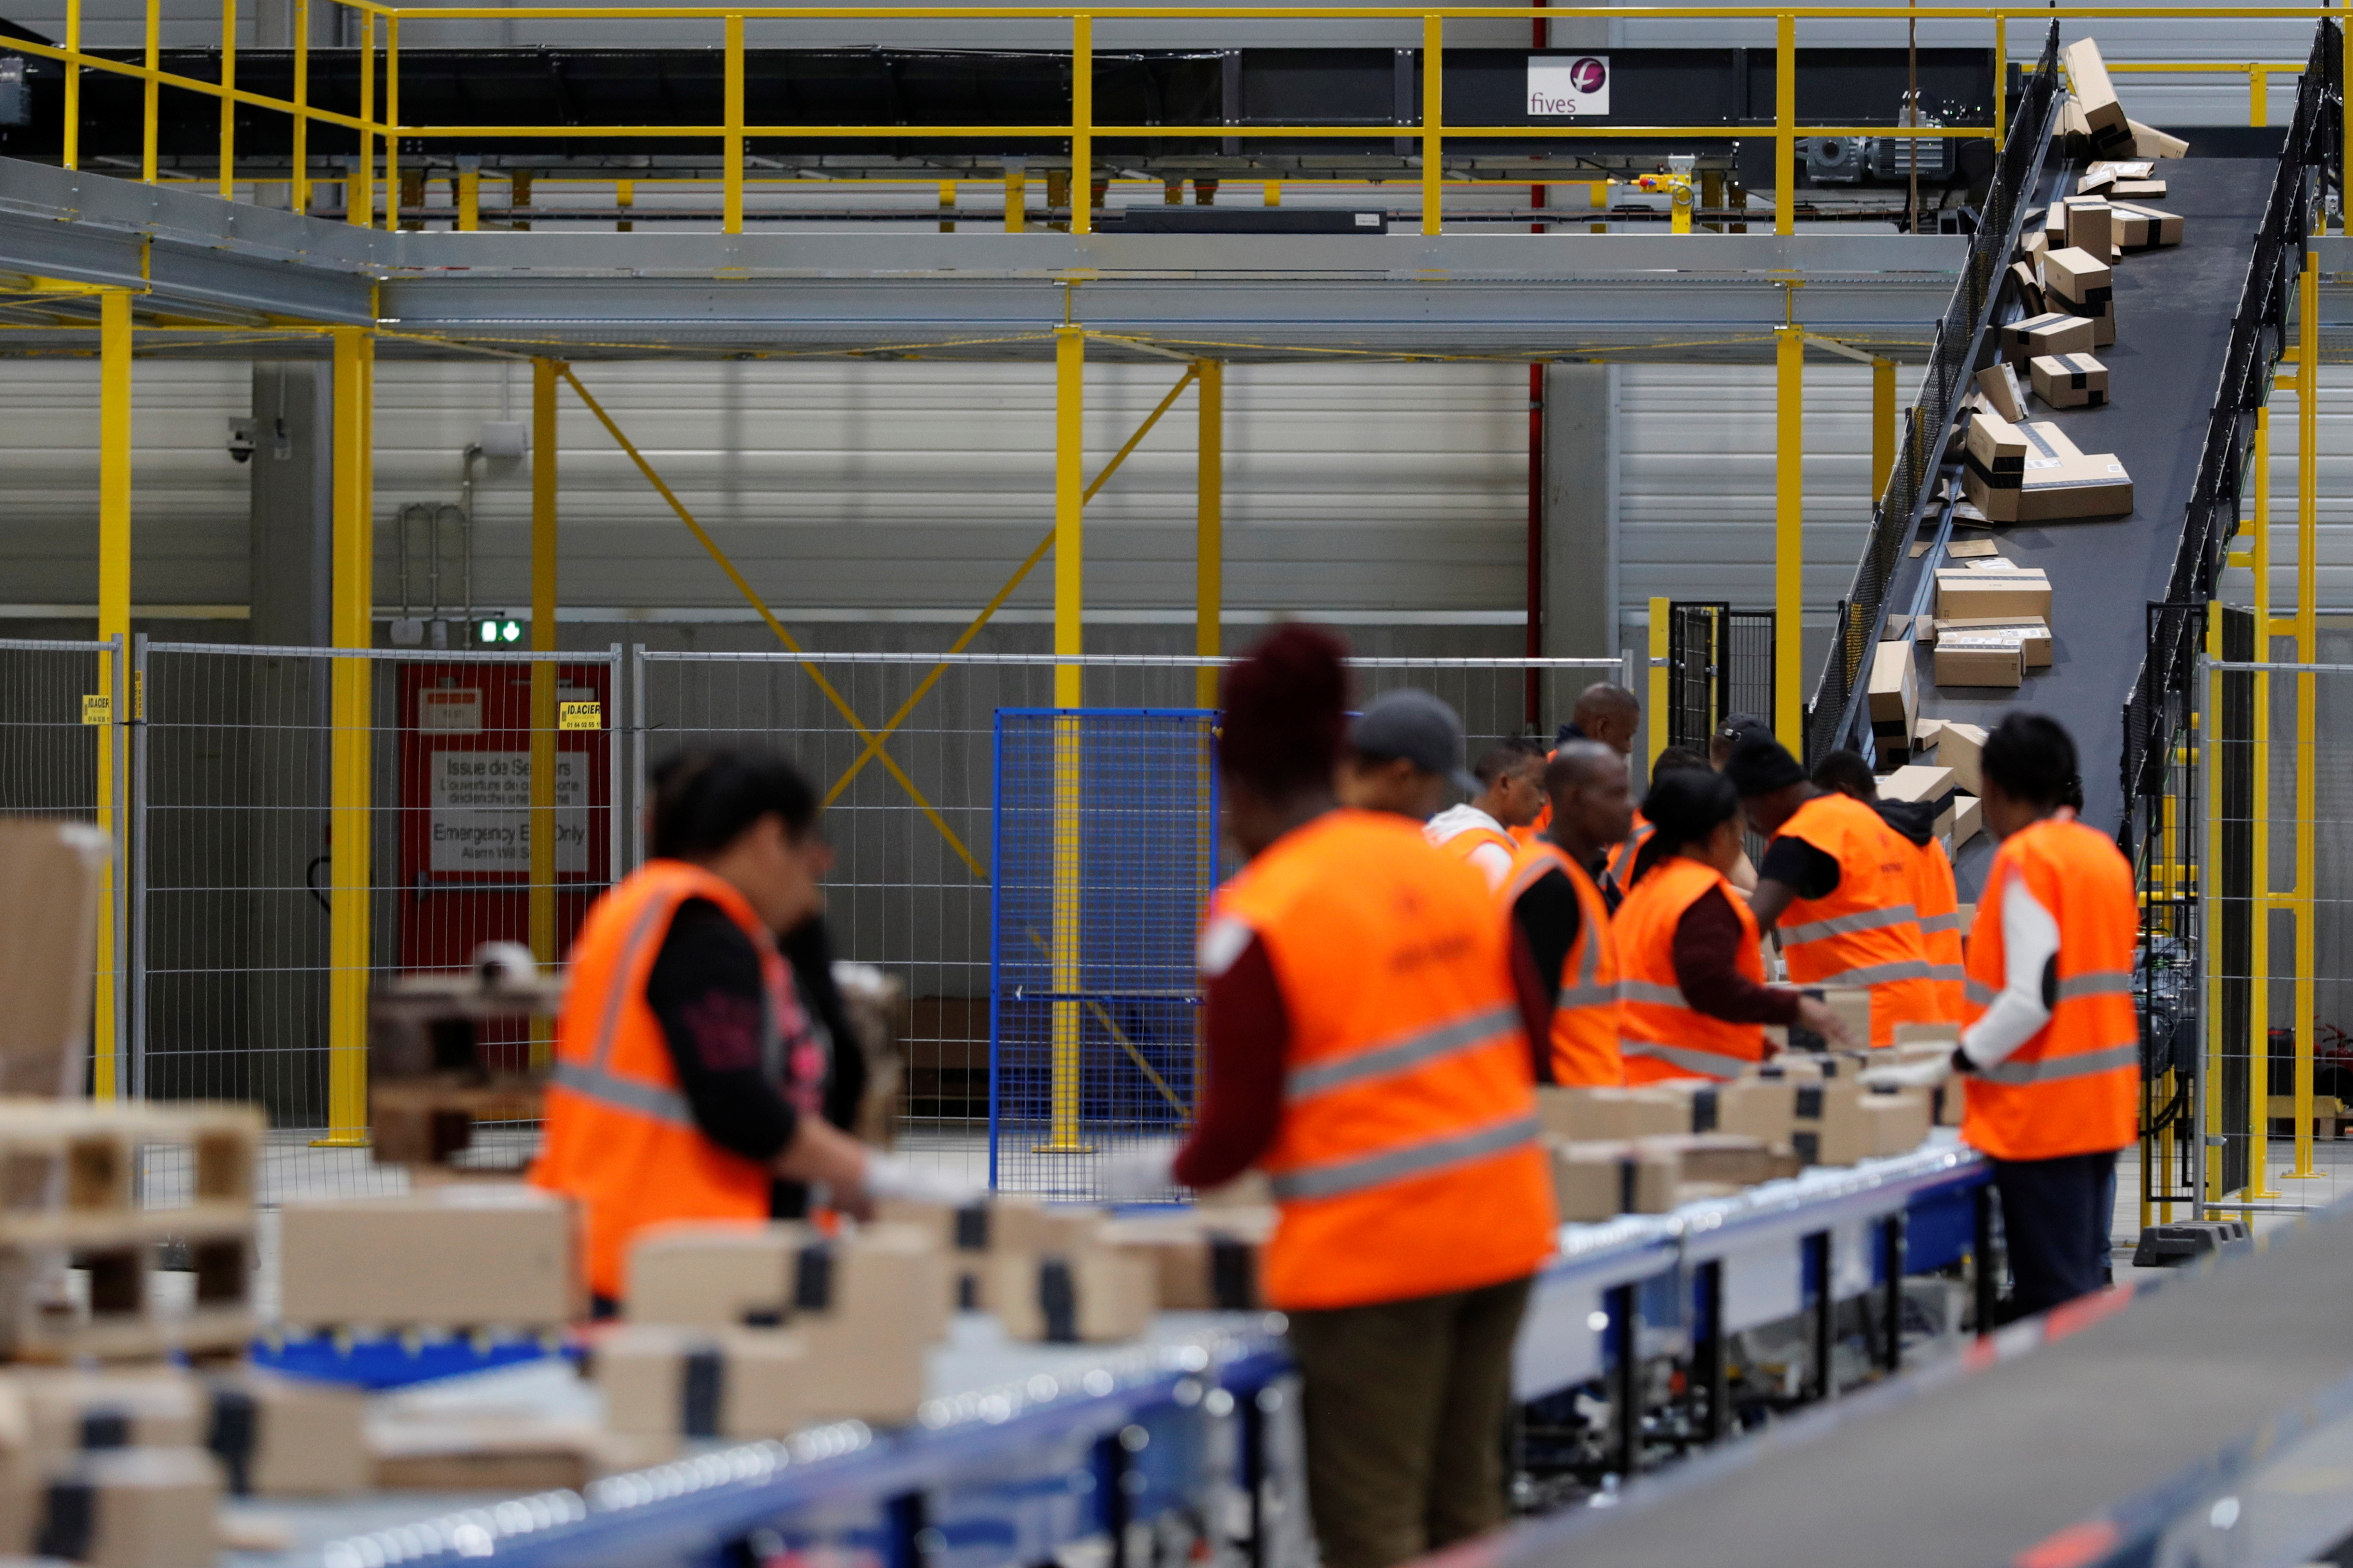 Employees sort packages at the Amazon distribution center warehouse in Saran, near Orleans, France, November 22, 2016.   REUTERS/Philippe Wojazer - RC184ABAB660